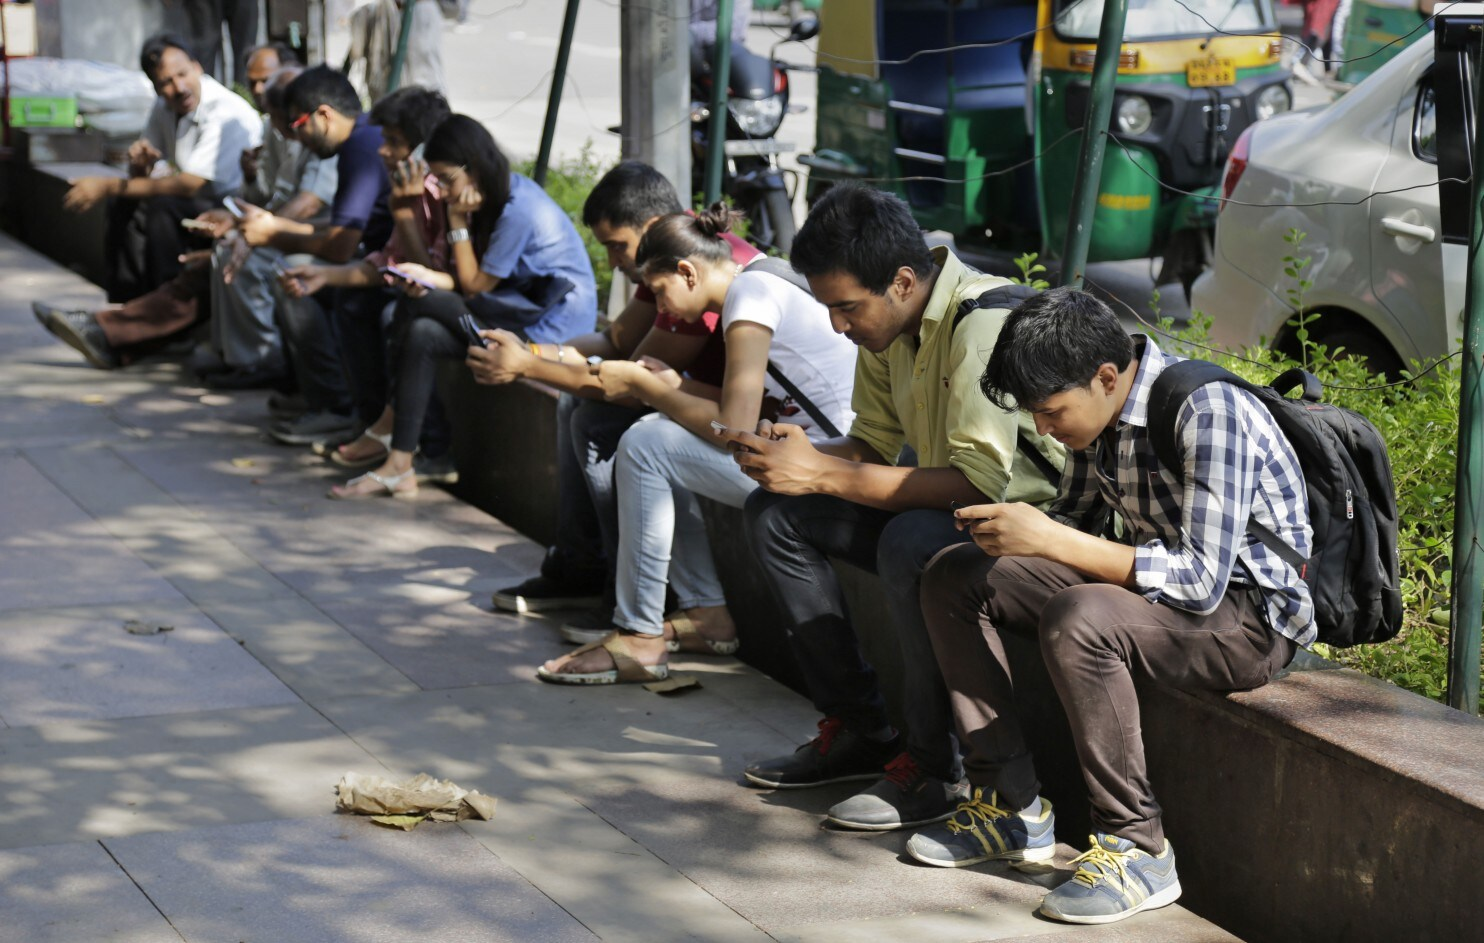 Young adults sitting on a bench looking down at their smartphones _ India